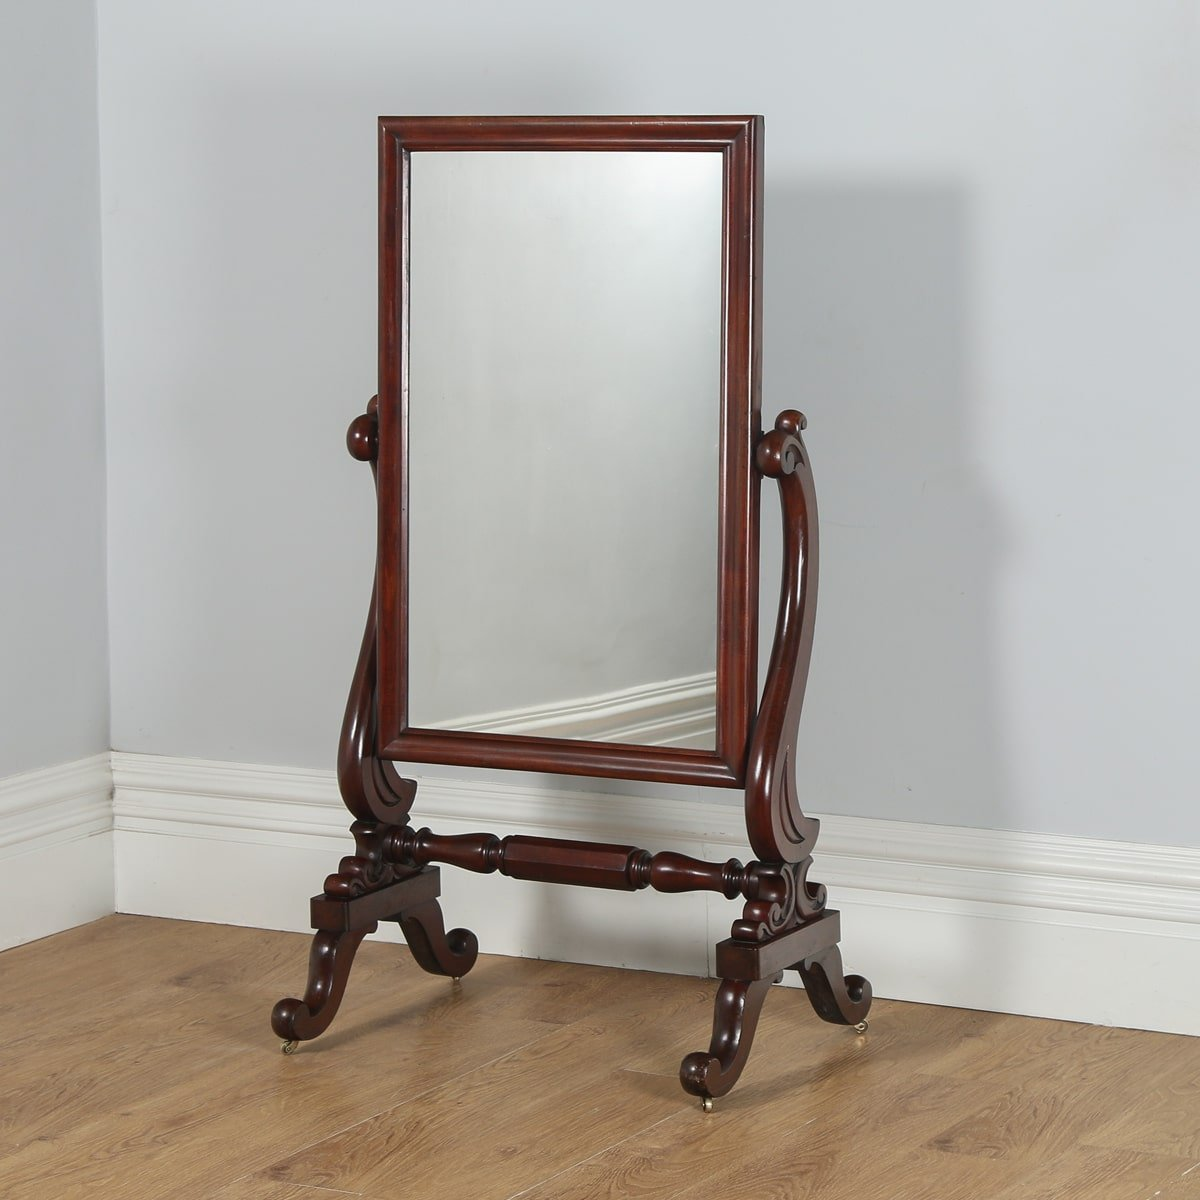 Antique mahogany floor mirror